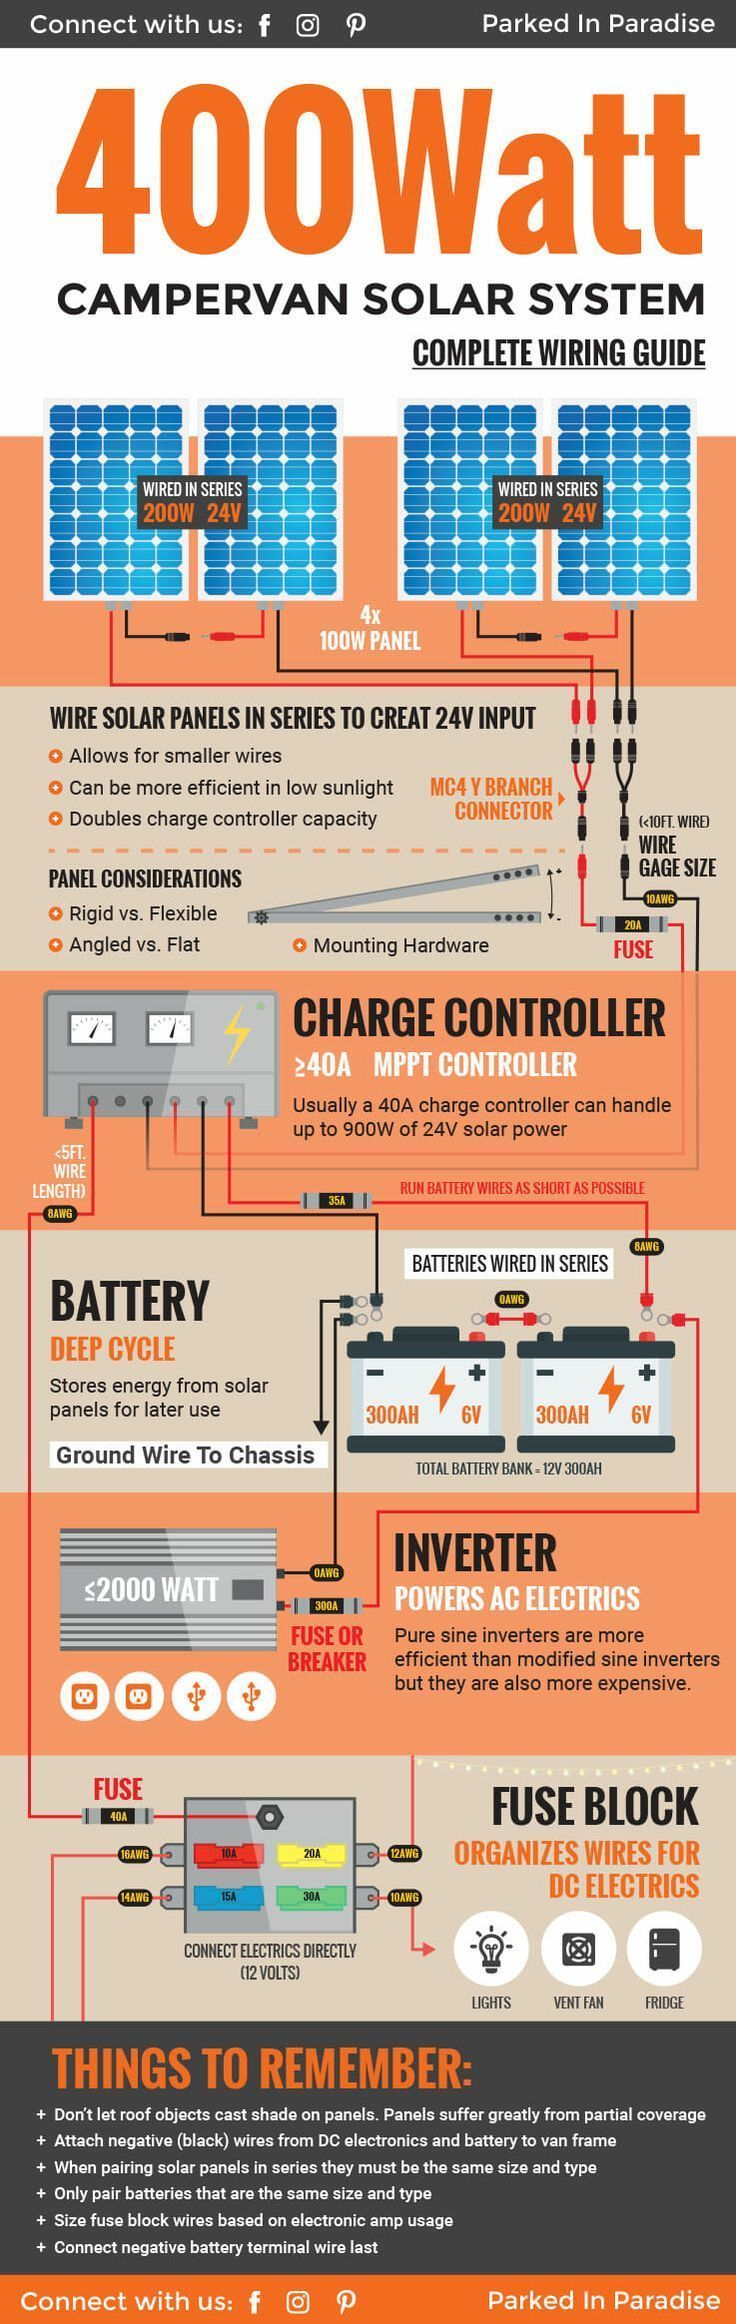 medium resolution of diy wiring guide for a 400 watt solar panel system perfect kit for a campervan build i want this on my own van build perfect solar power setup of